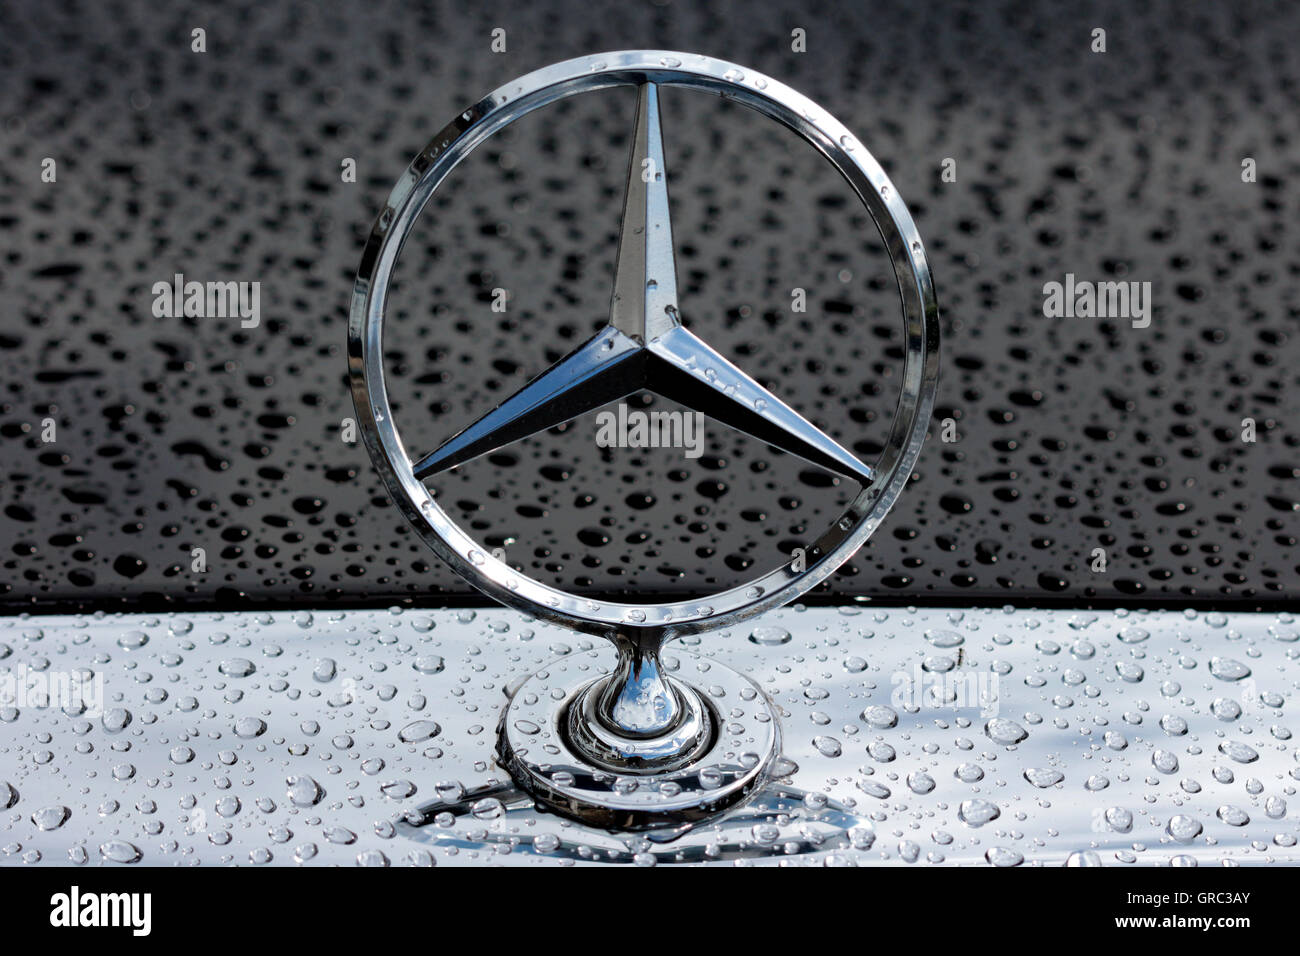 Mercedes benz star logo on an rainy hood stock photo for Mercedes benz star logo